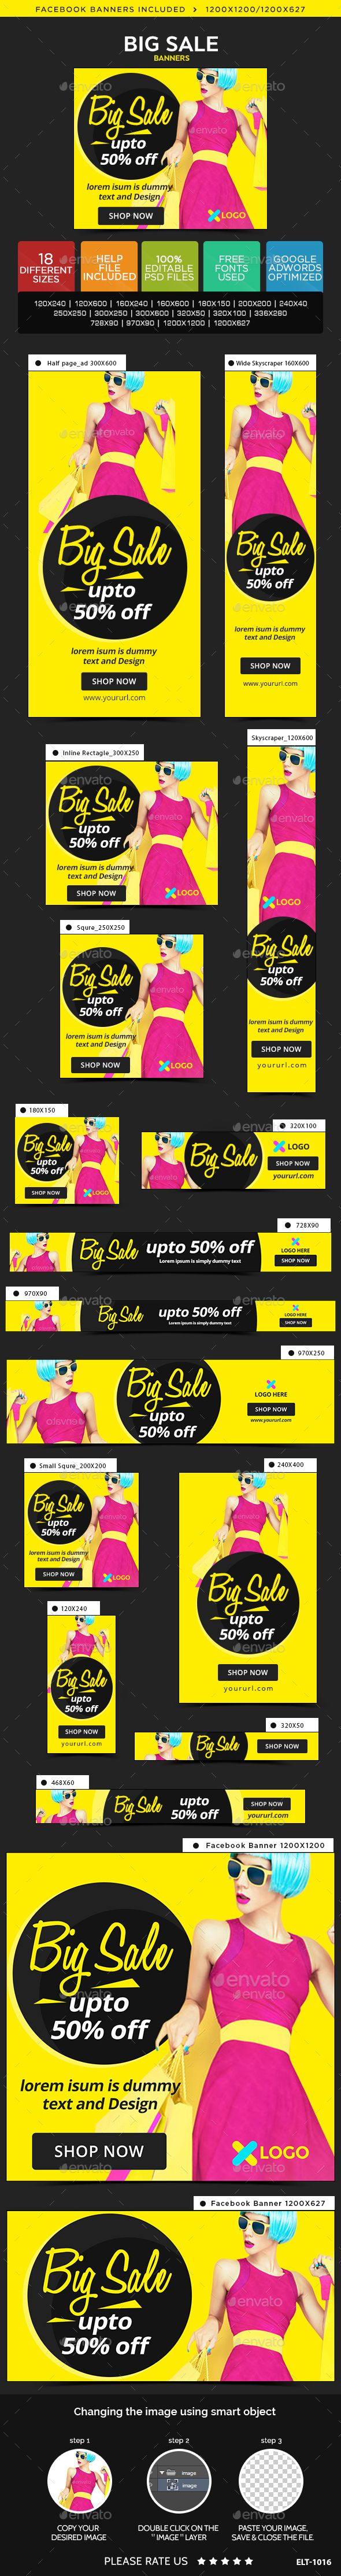 18 Awesome Quality Big Sale Web Banners Template PSD #ad #design Download: http://graphicriver.net/item/big-sale-banners/14287363?ref=ksioks